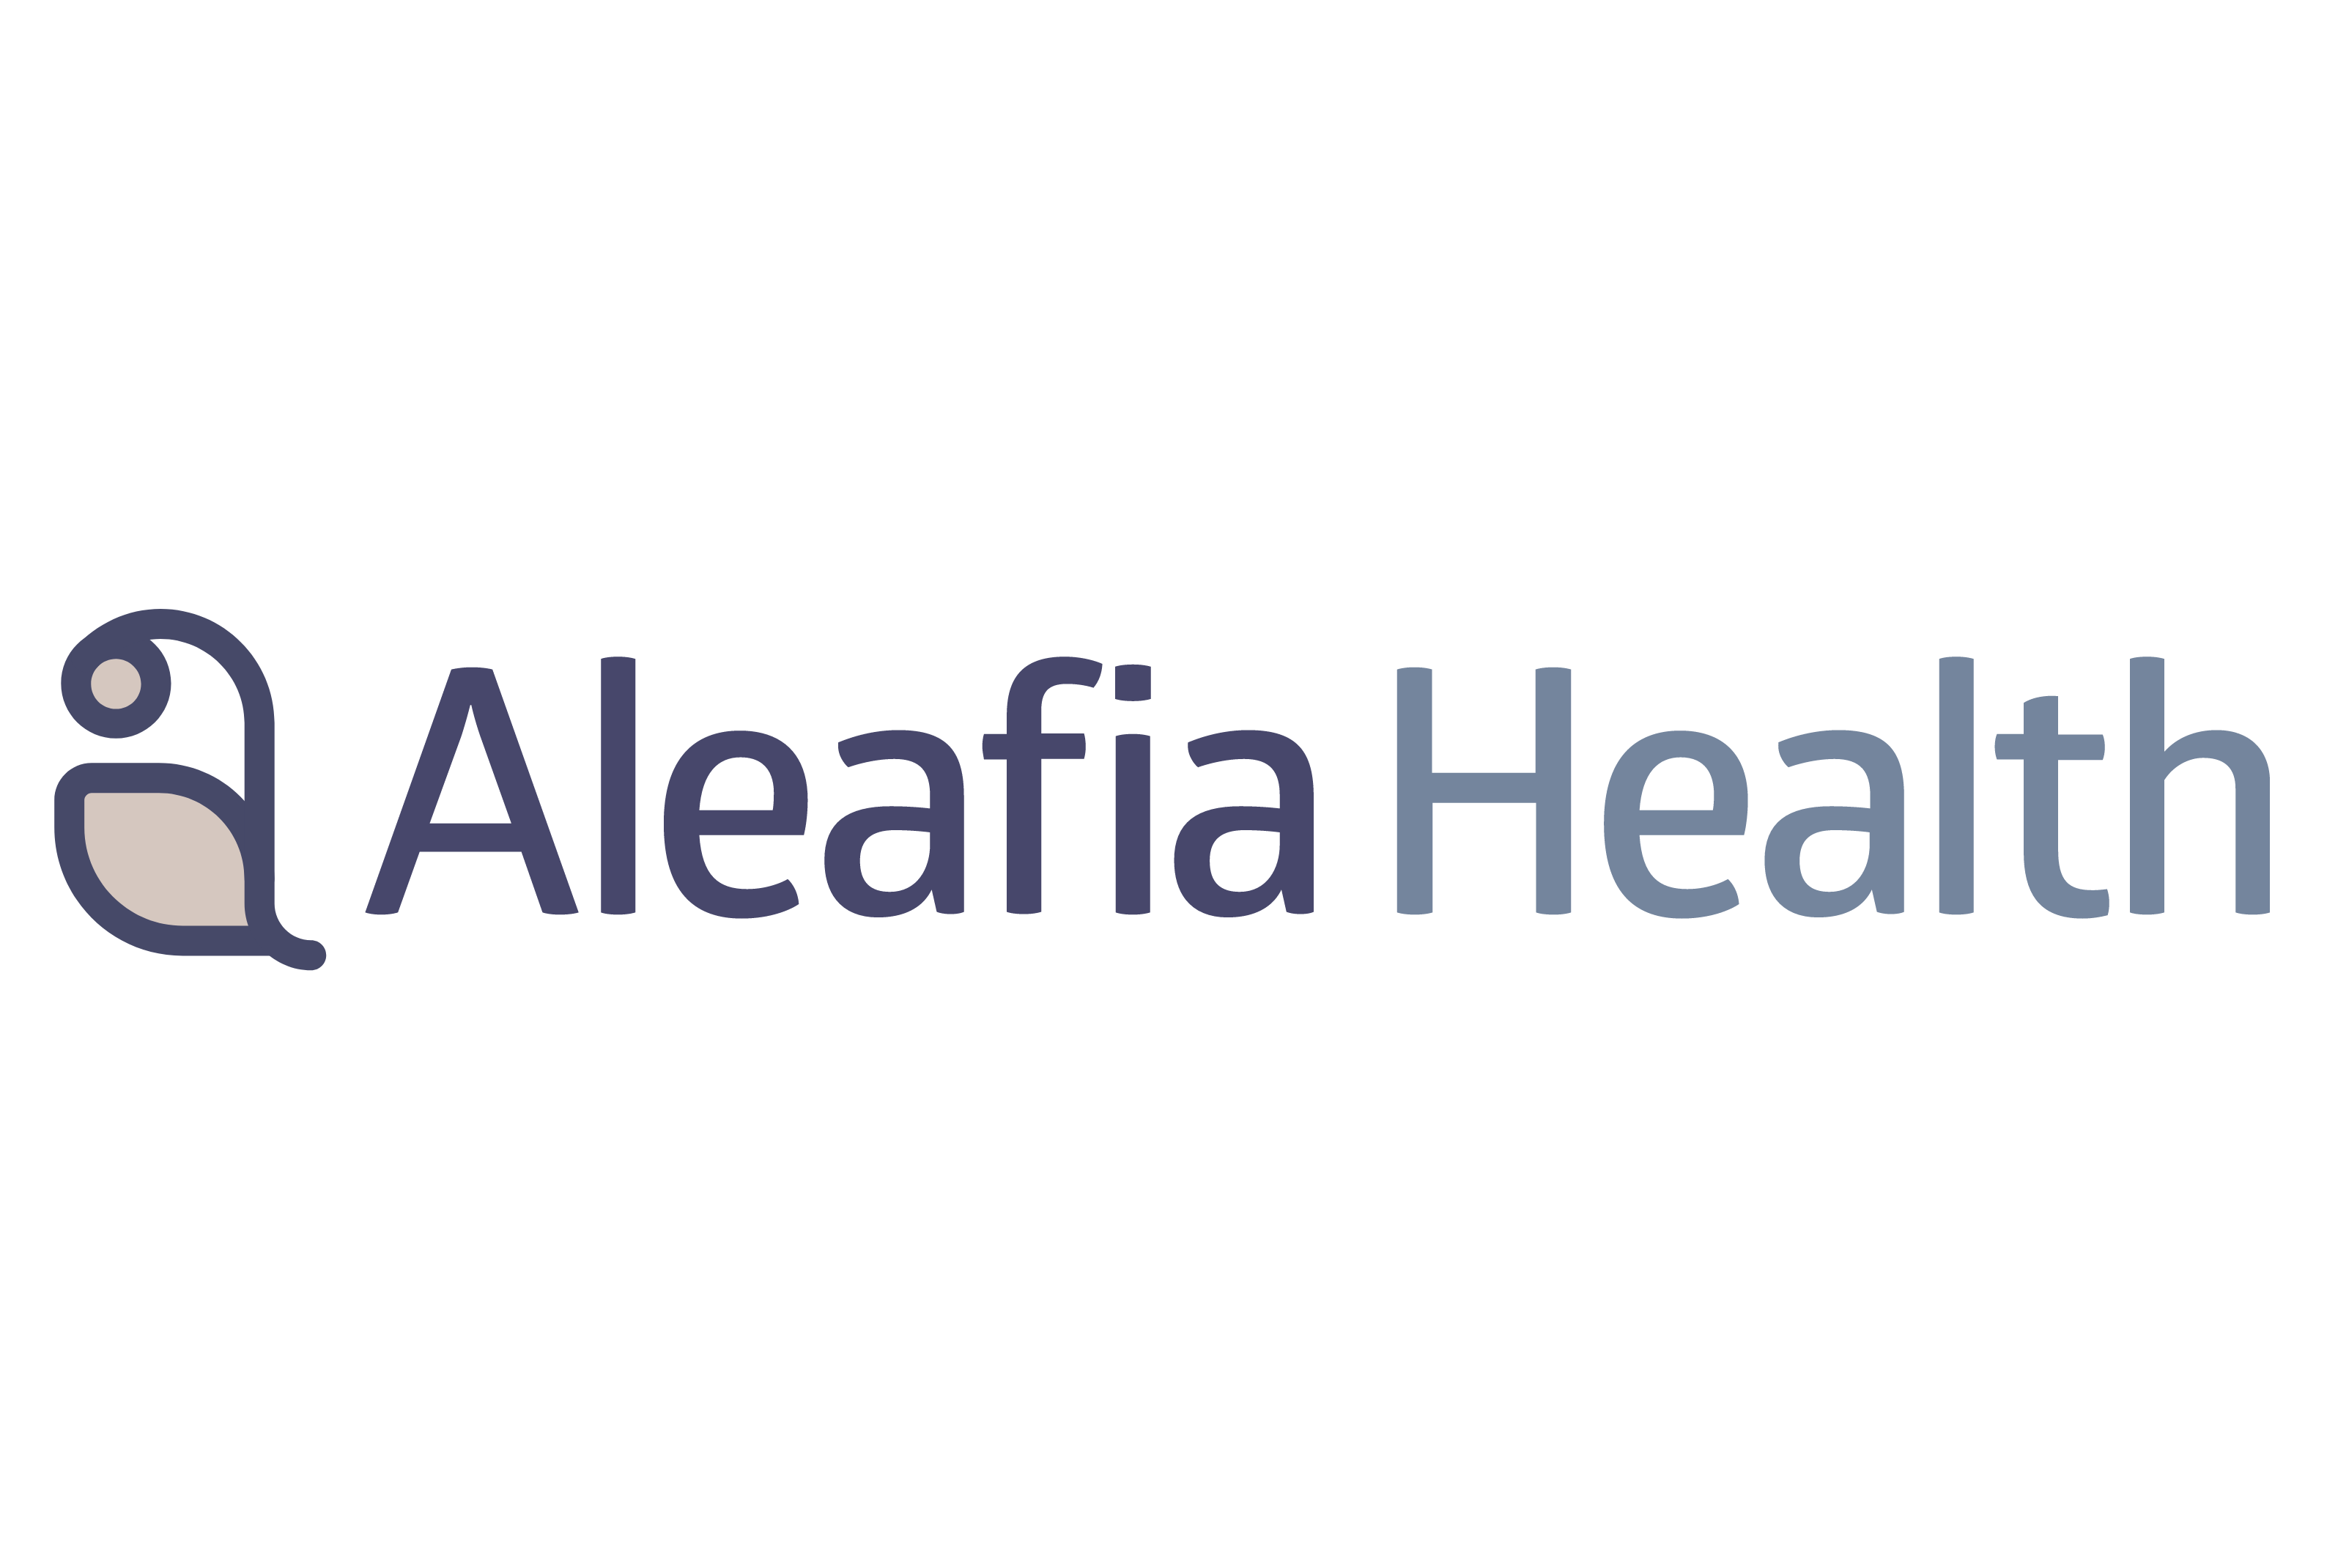 Aleafia Health Launches Cannabis 2.0 Portfolio with 510 Vape Cartridges Featuring Unique Formulations